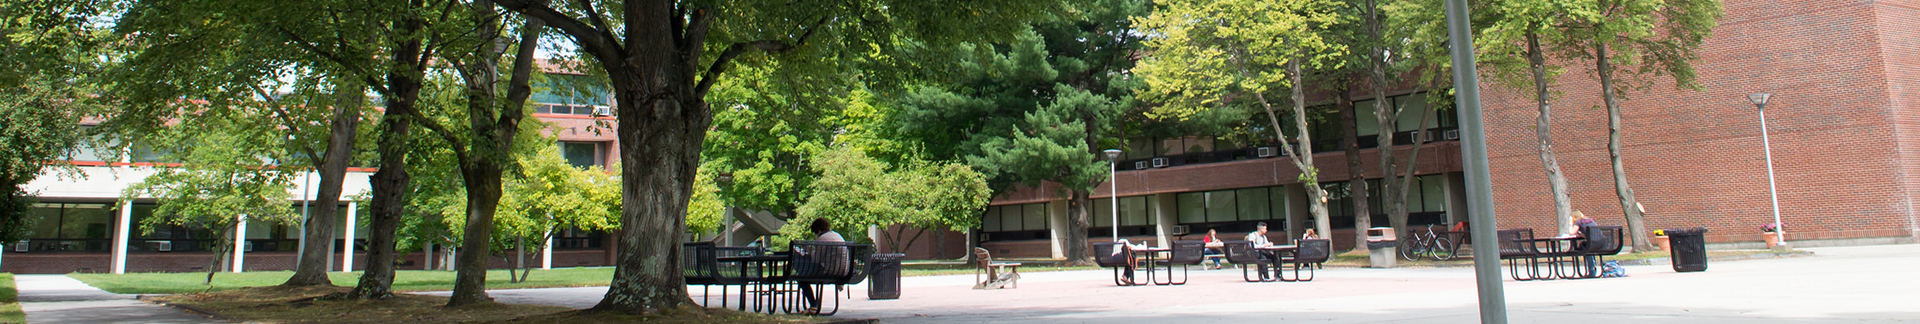 Haverhill Campus resting area